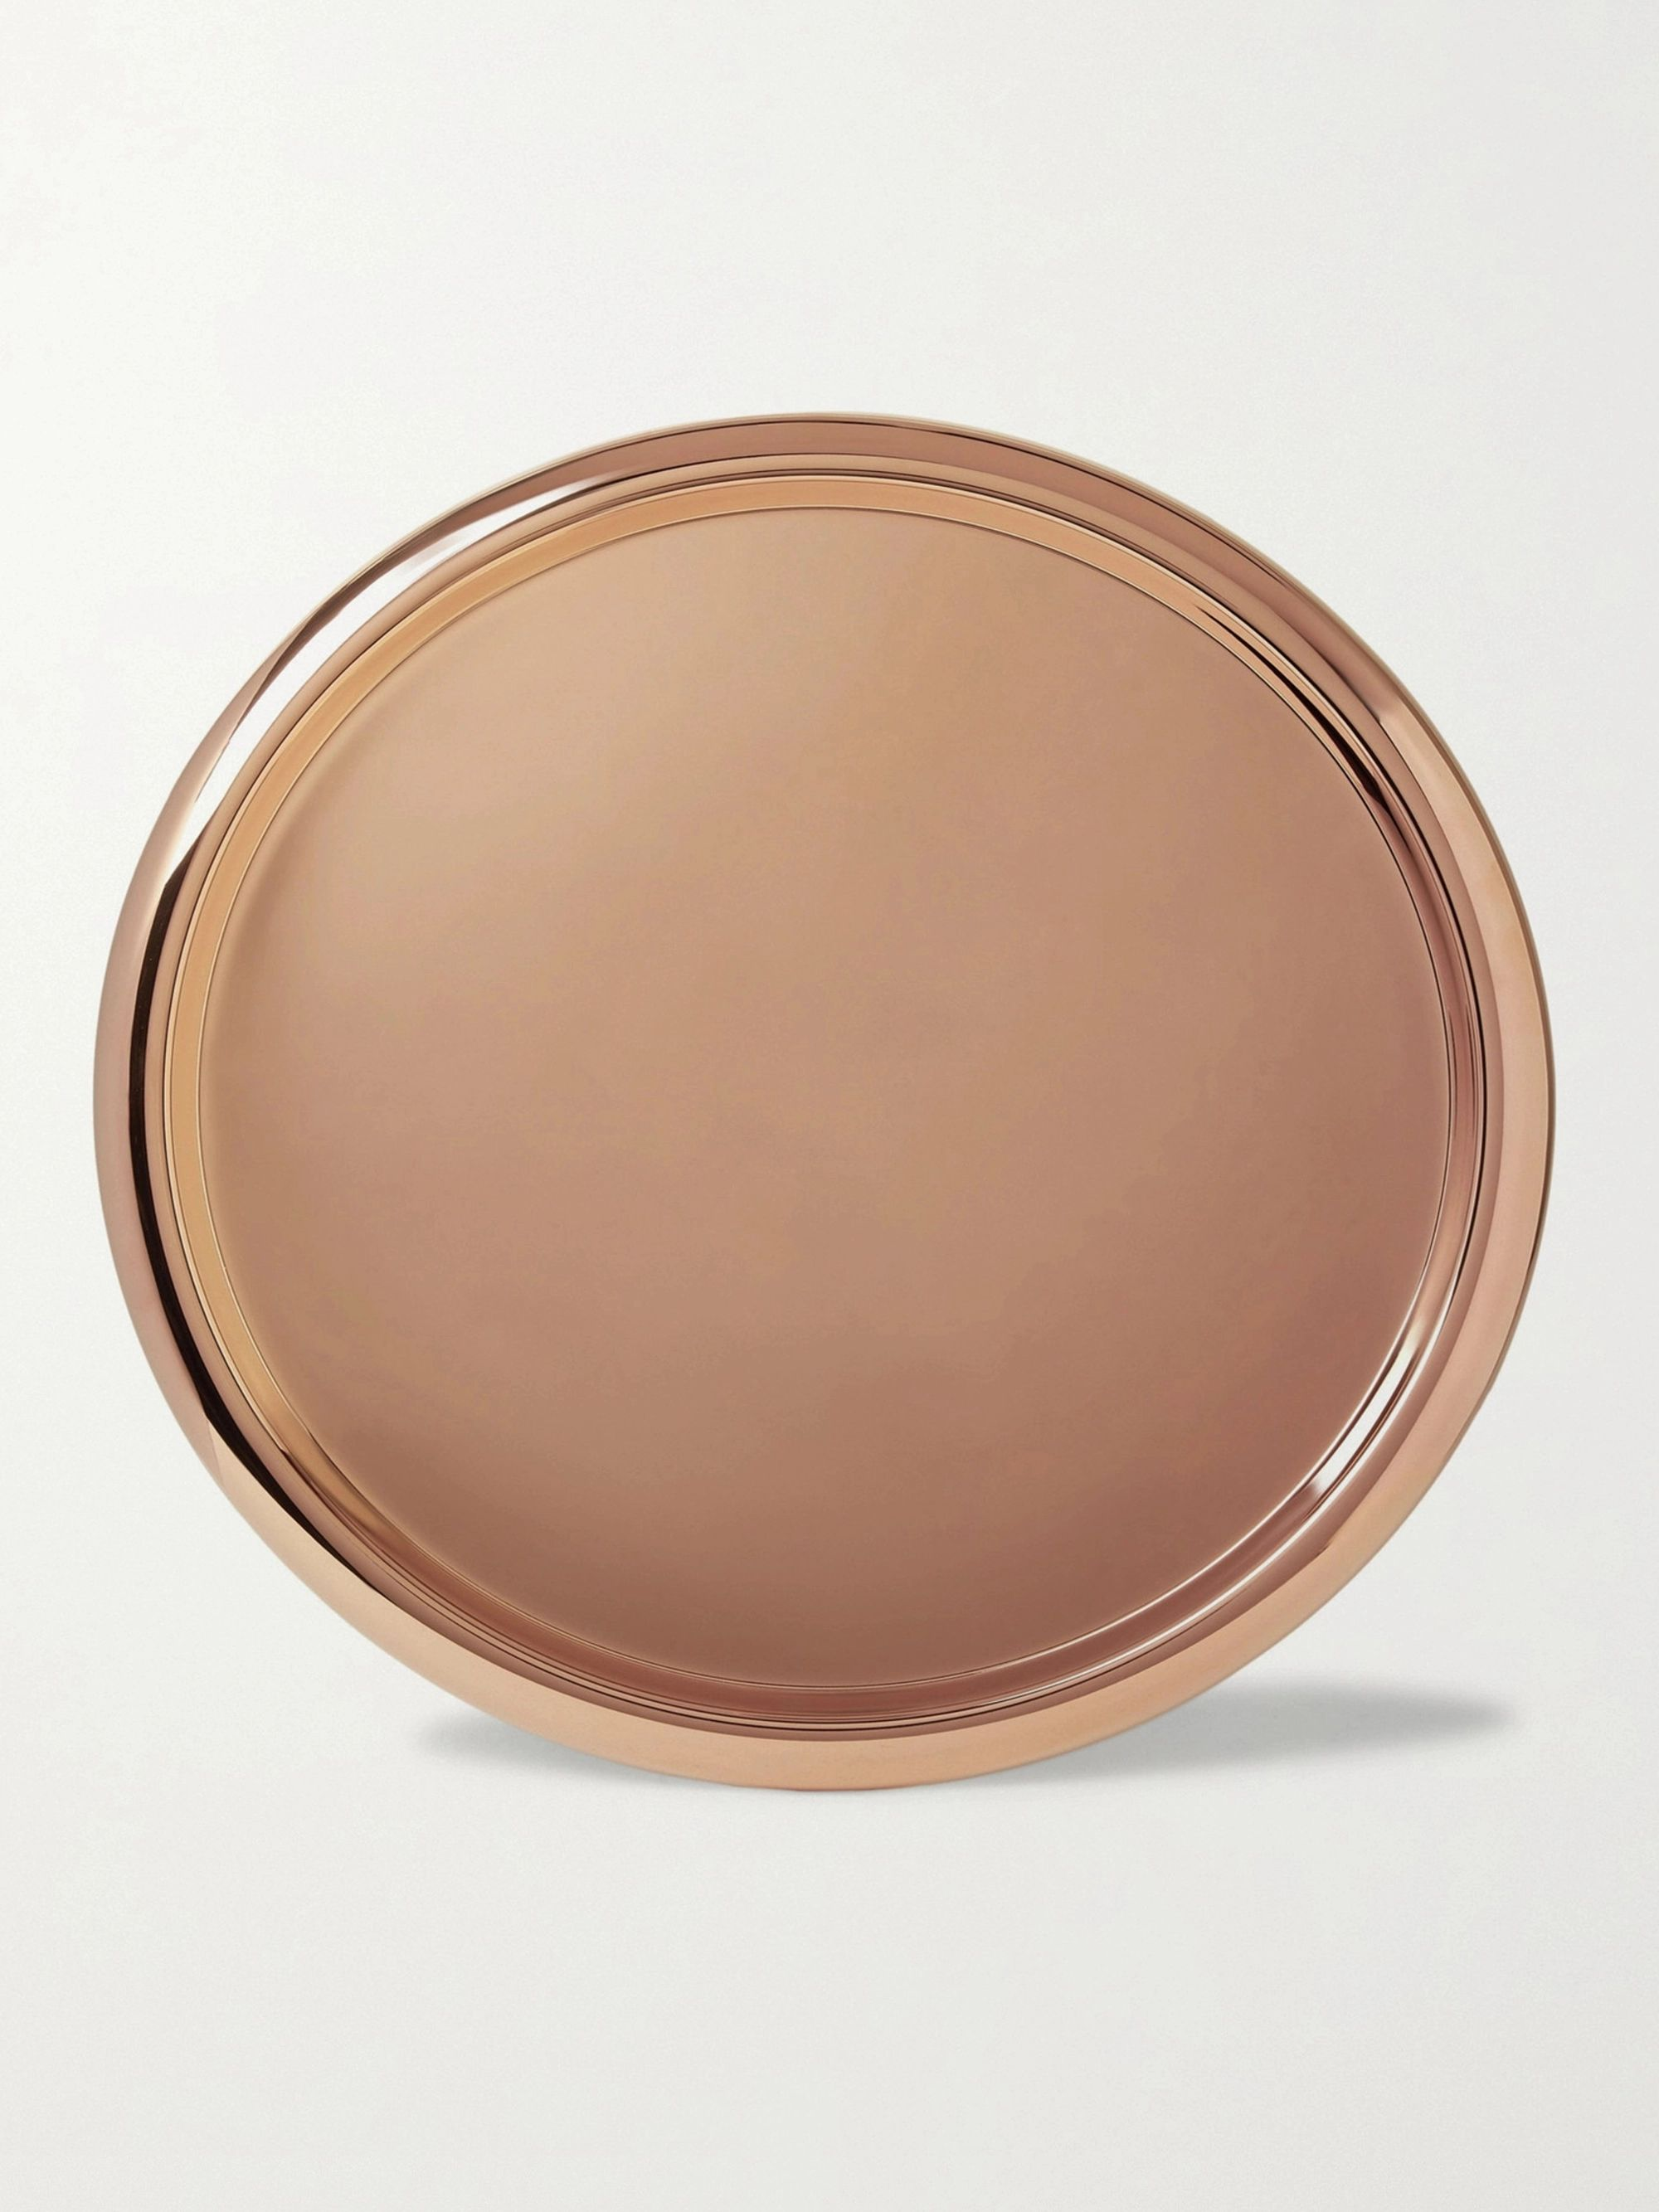 Tom Dixon Brew Copper-Plated Stainless Steel Tray